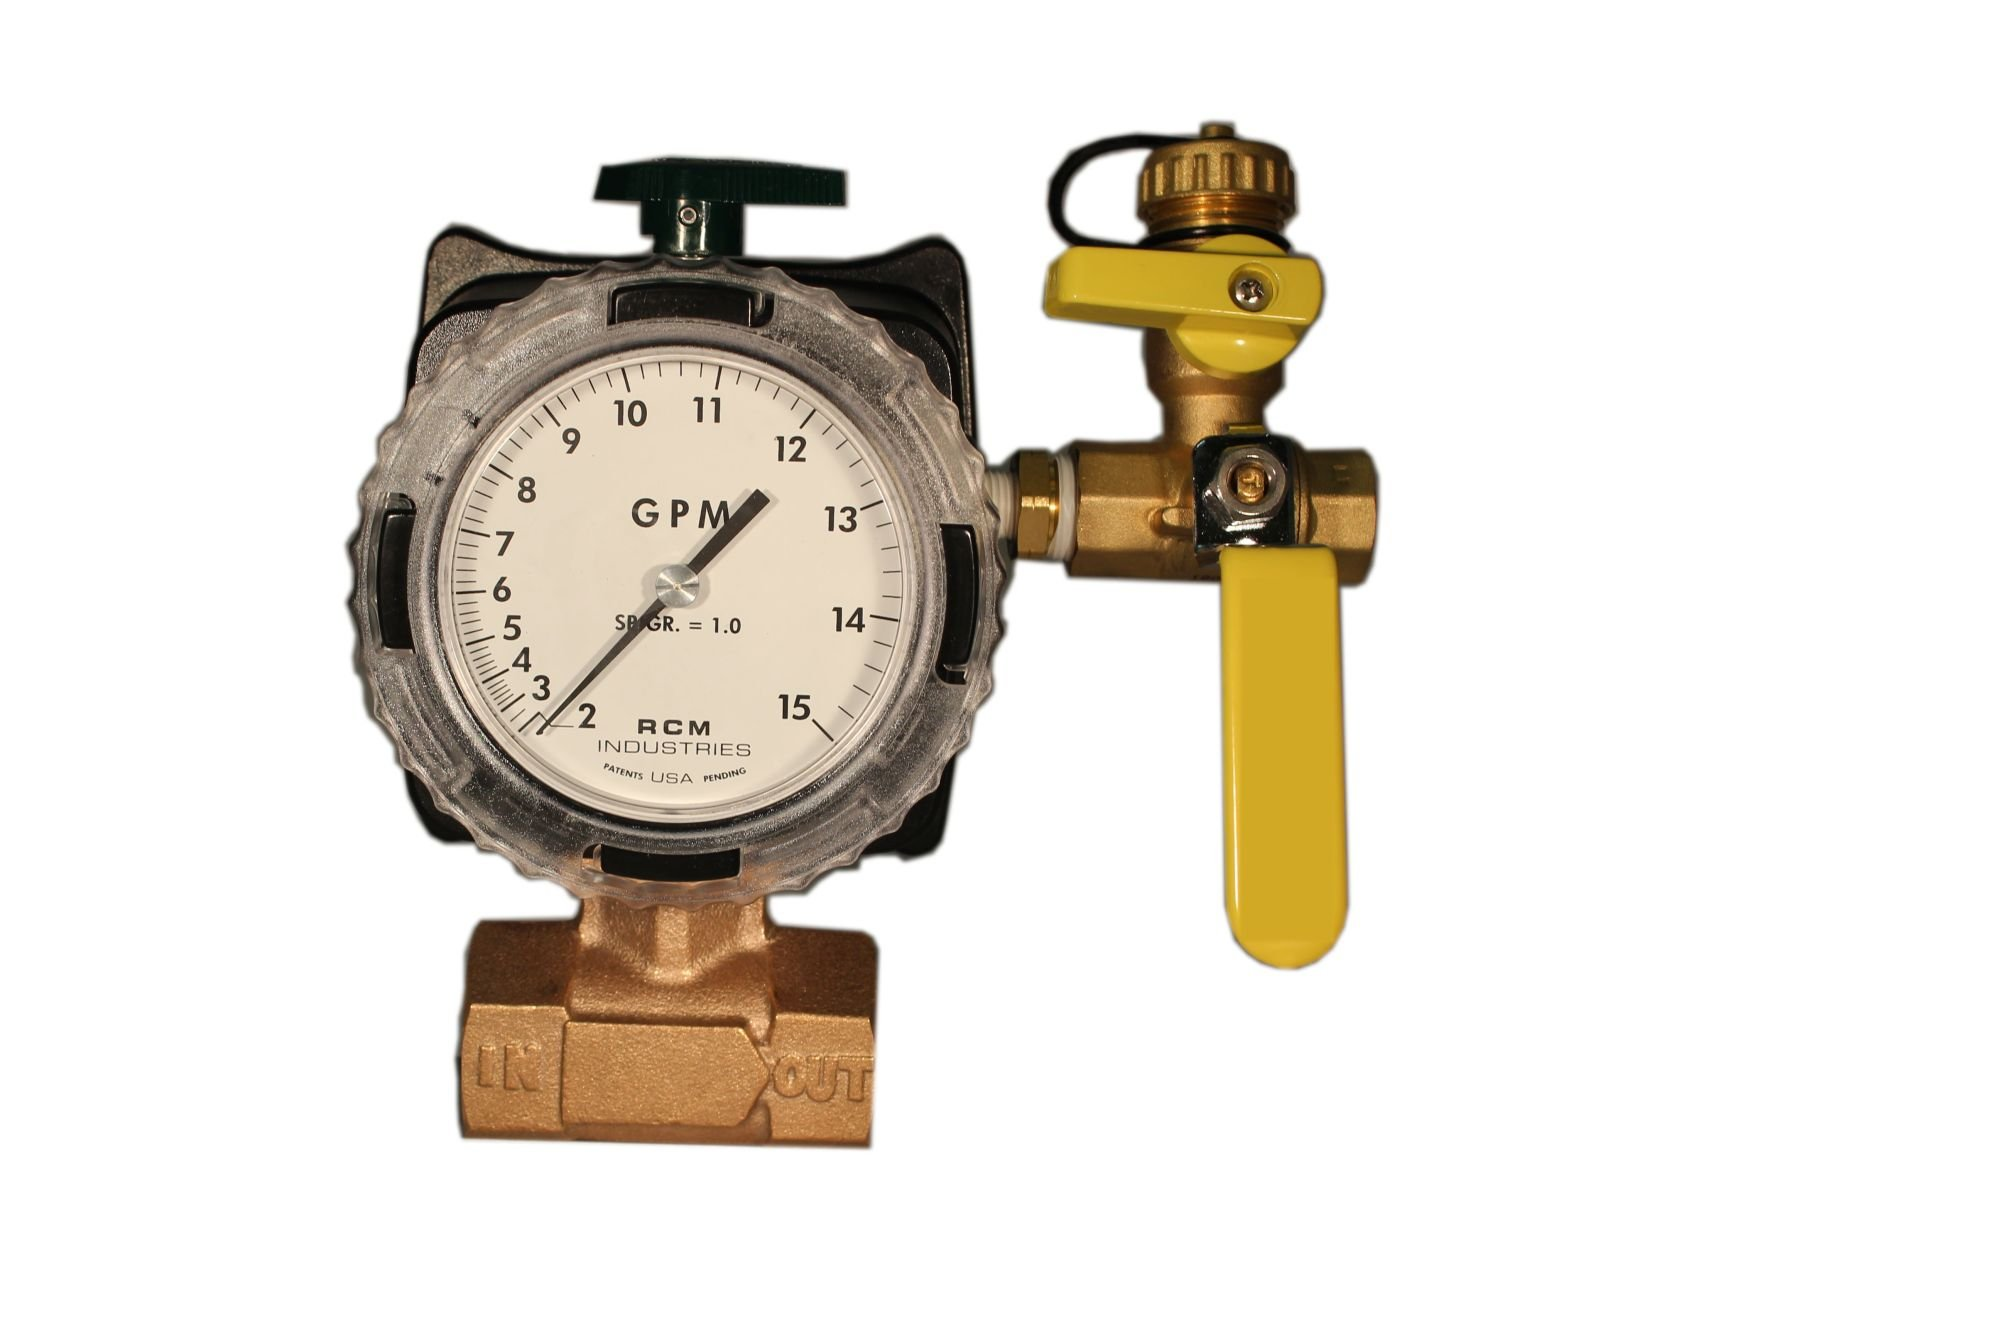 Differential pressure flow meter with flush valve system